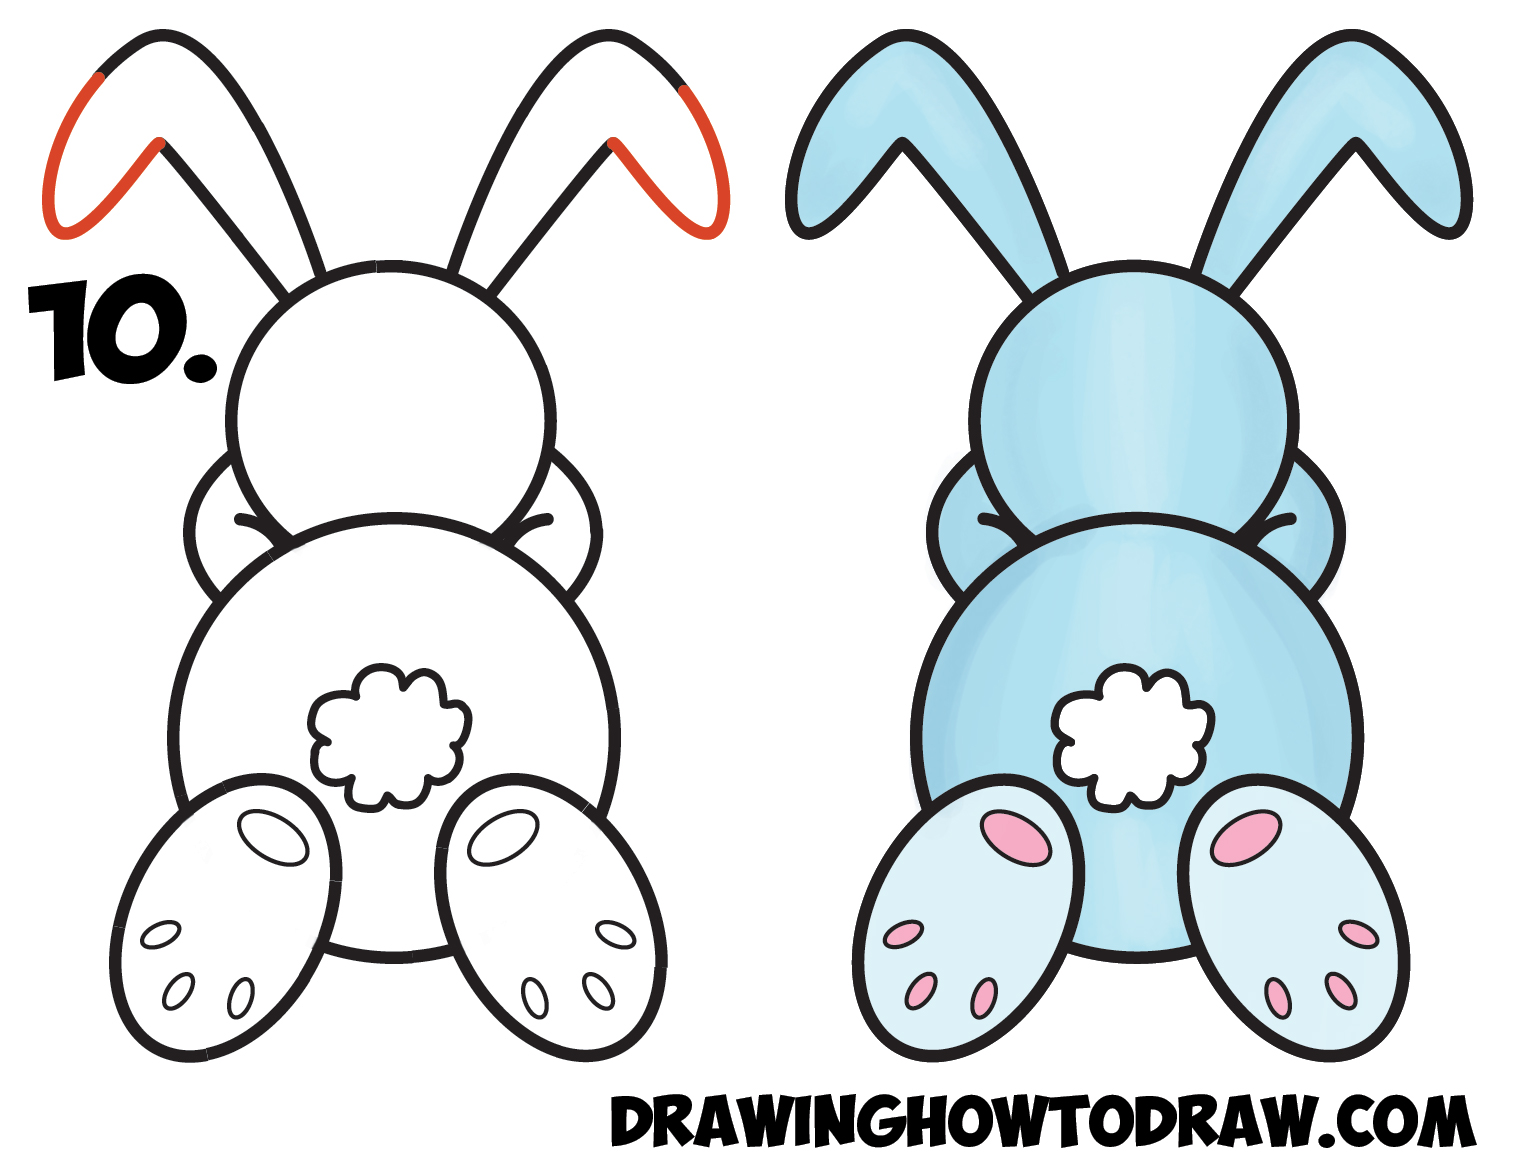 Learn How to Draw a Cute Cartoon Sleeping Bunny Rabbit from #8 Shape Simple Steps Drawing Lesson for Kids and Preschoolers